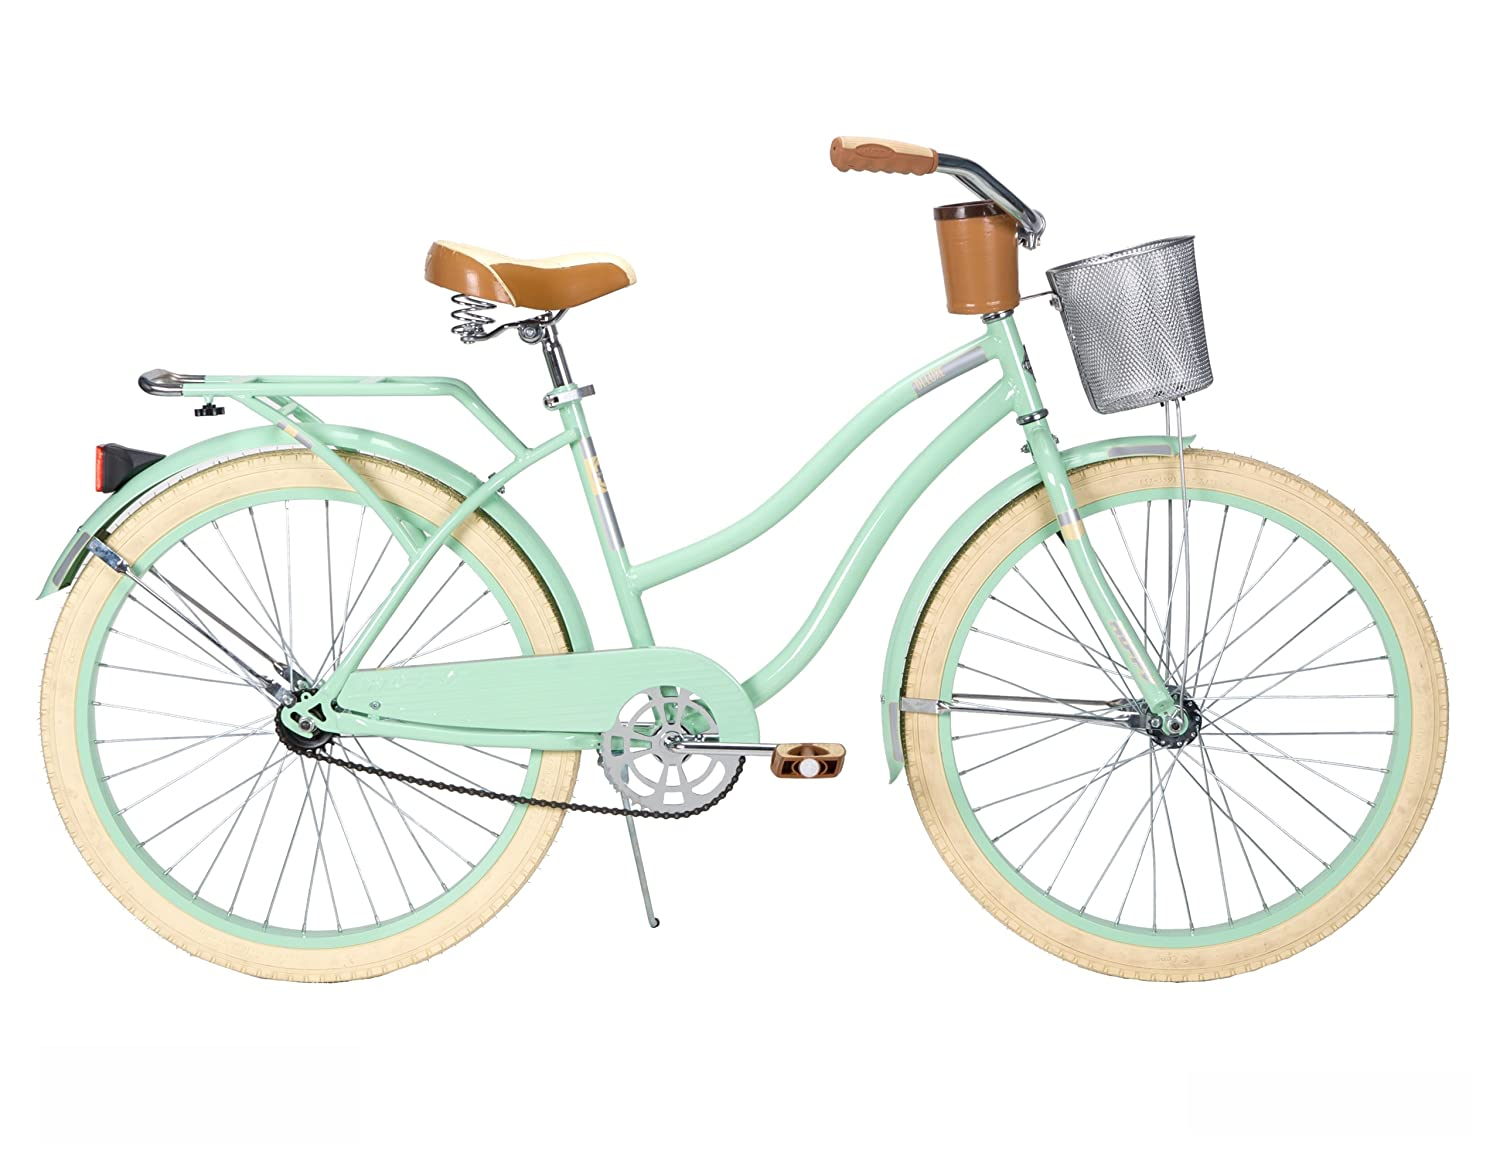 Cruiser Bikes With Baskets For Women Huffy Women s Deluxe Cruiser